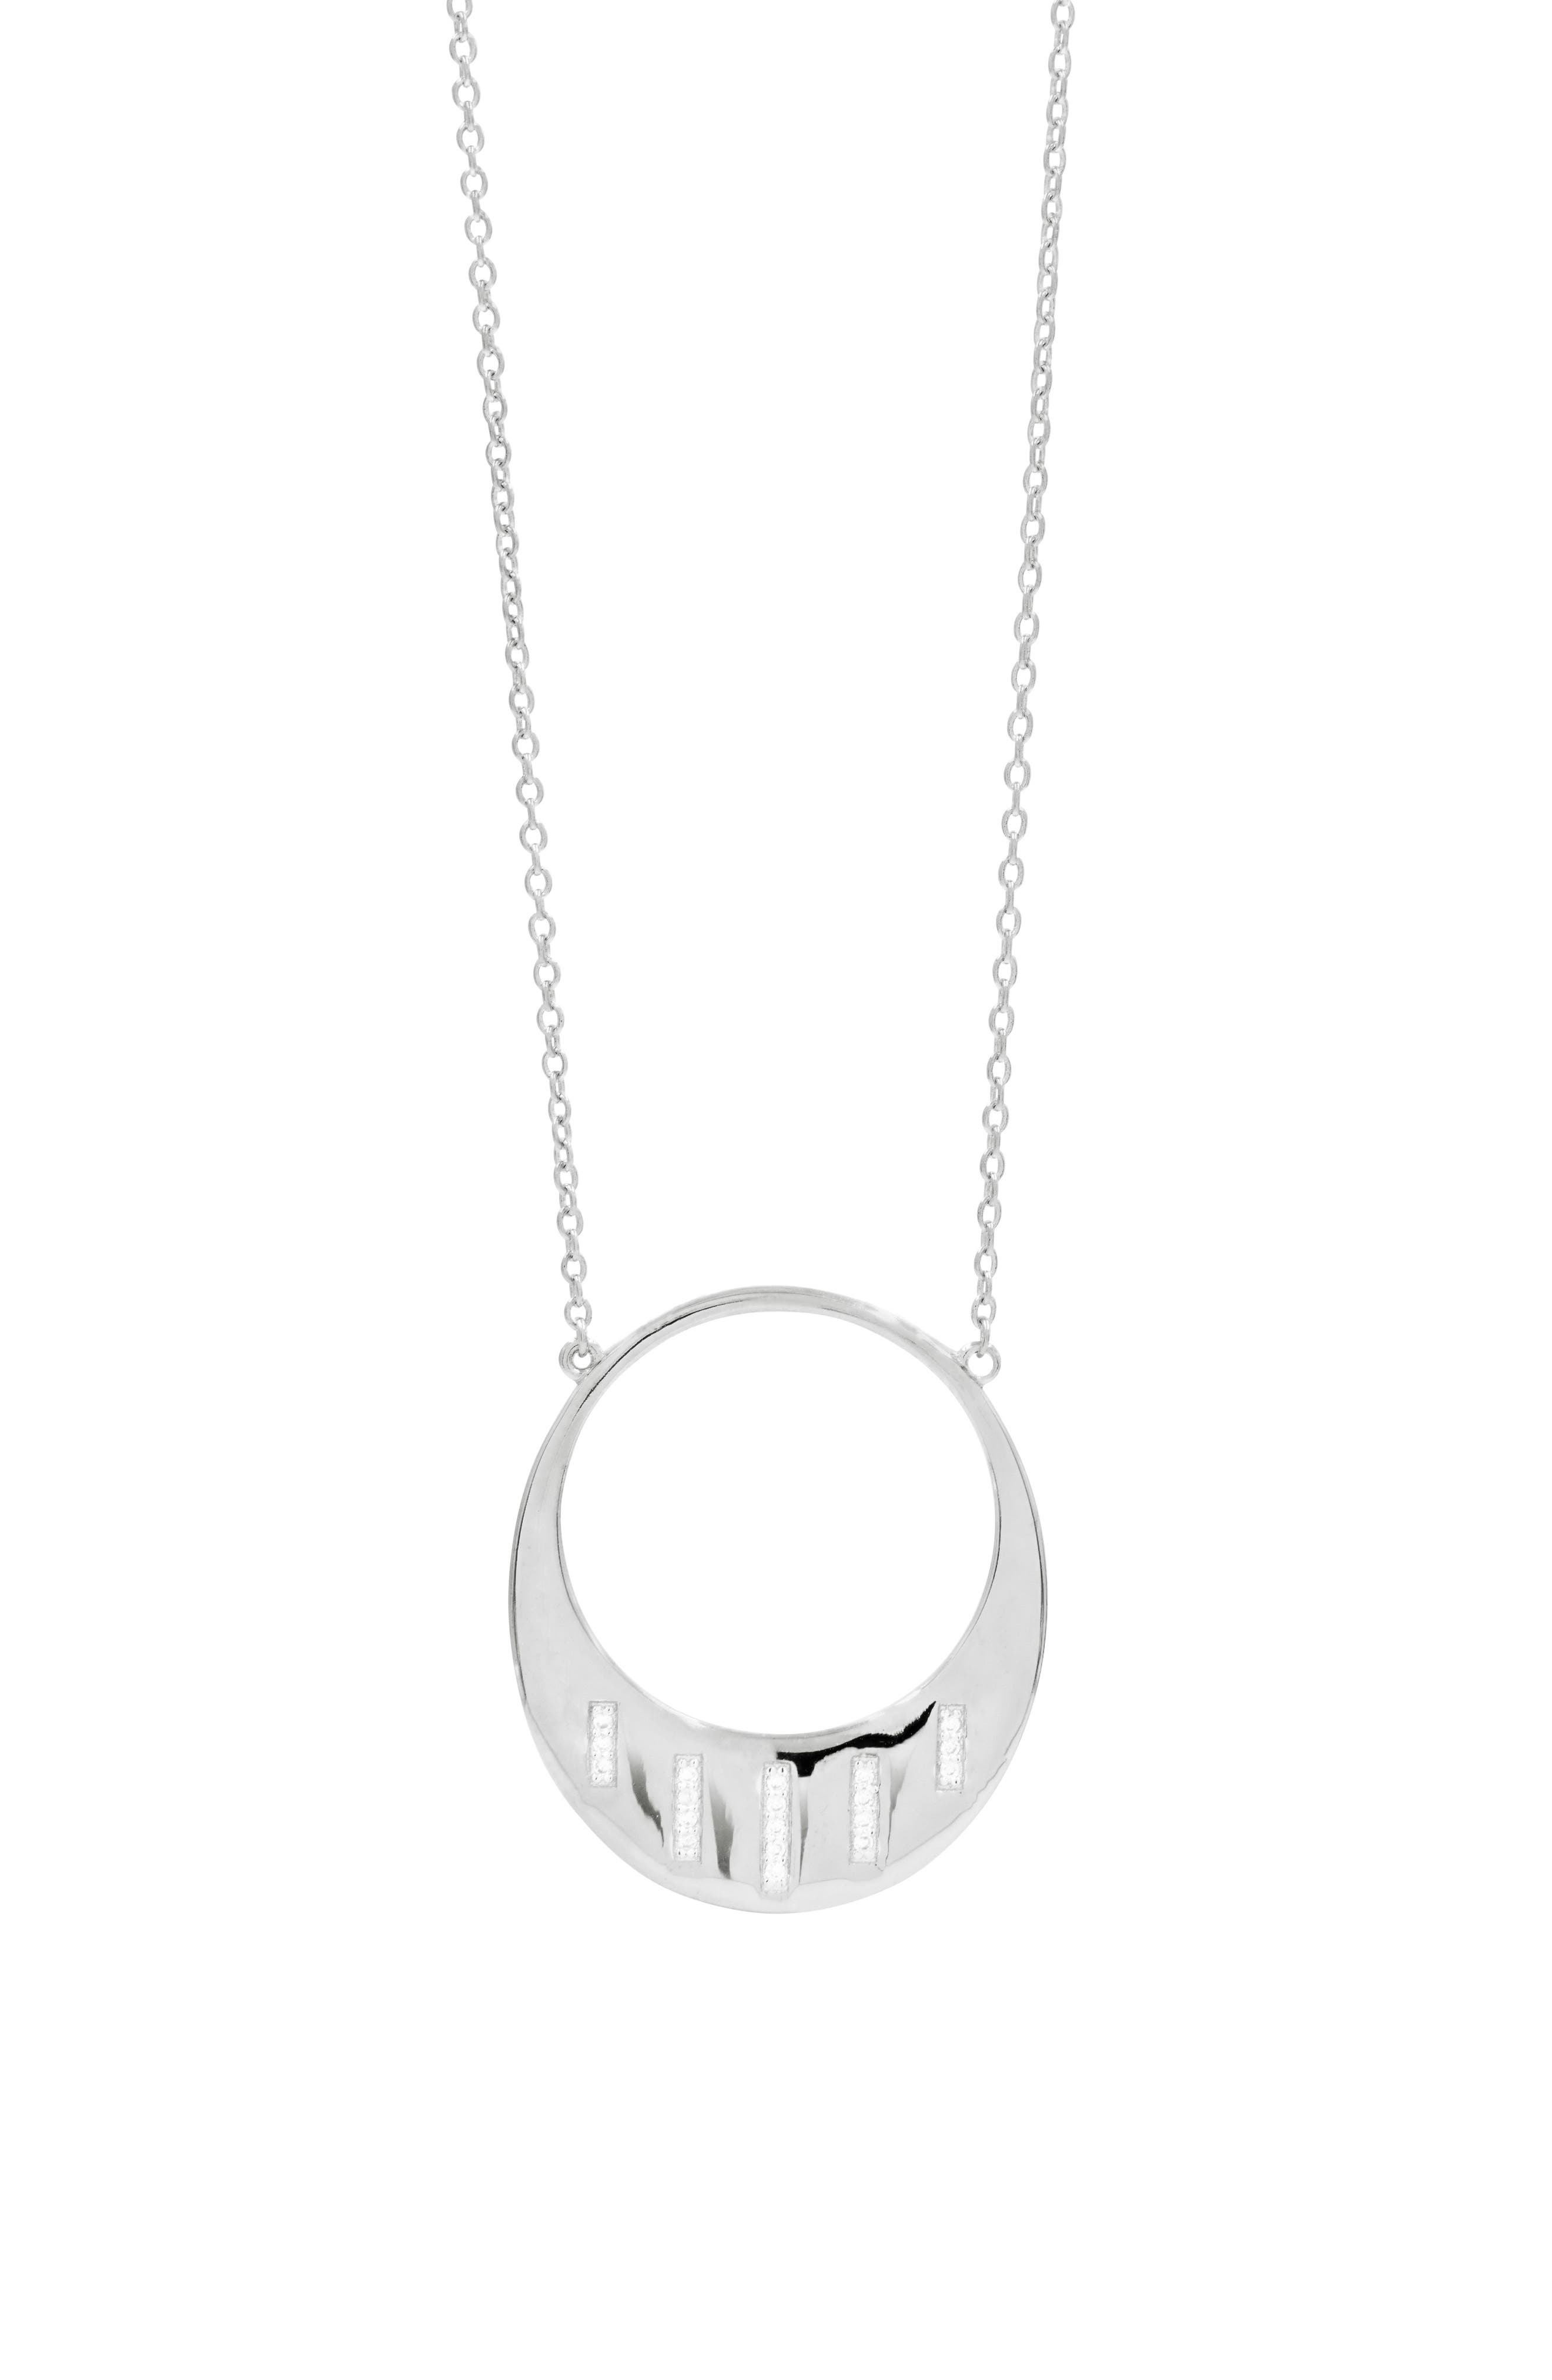 Radiance Open Pendant Necklace,                         Main,                         color, SILVER